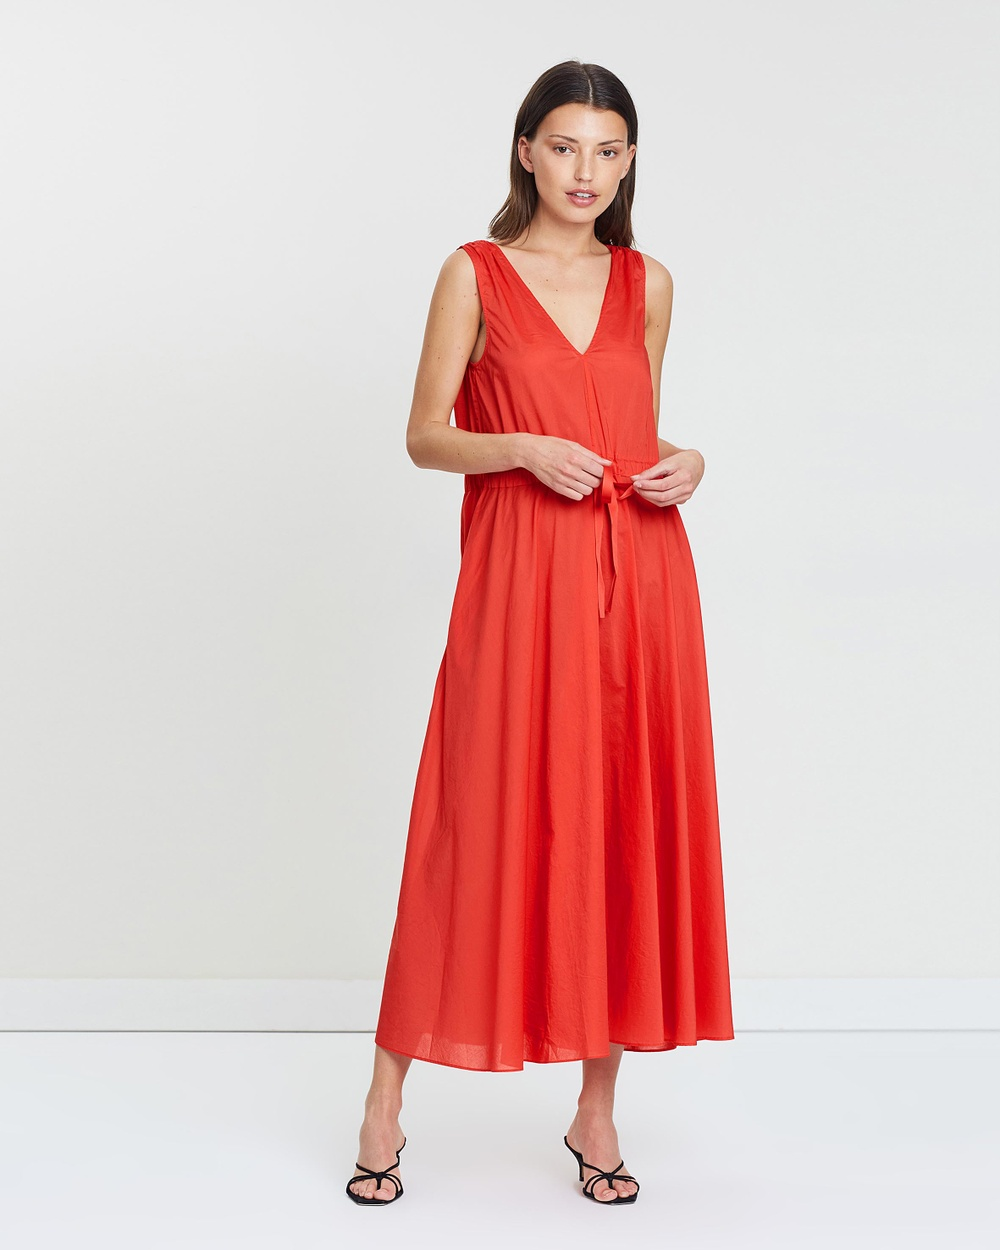 Jac + Jack Mila Red Evi Dress